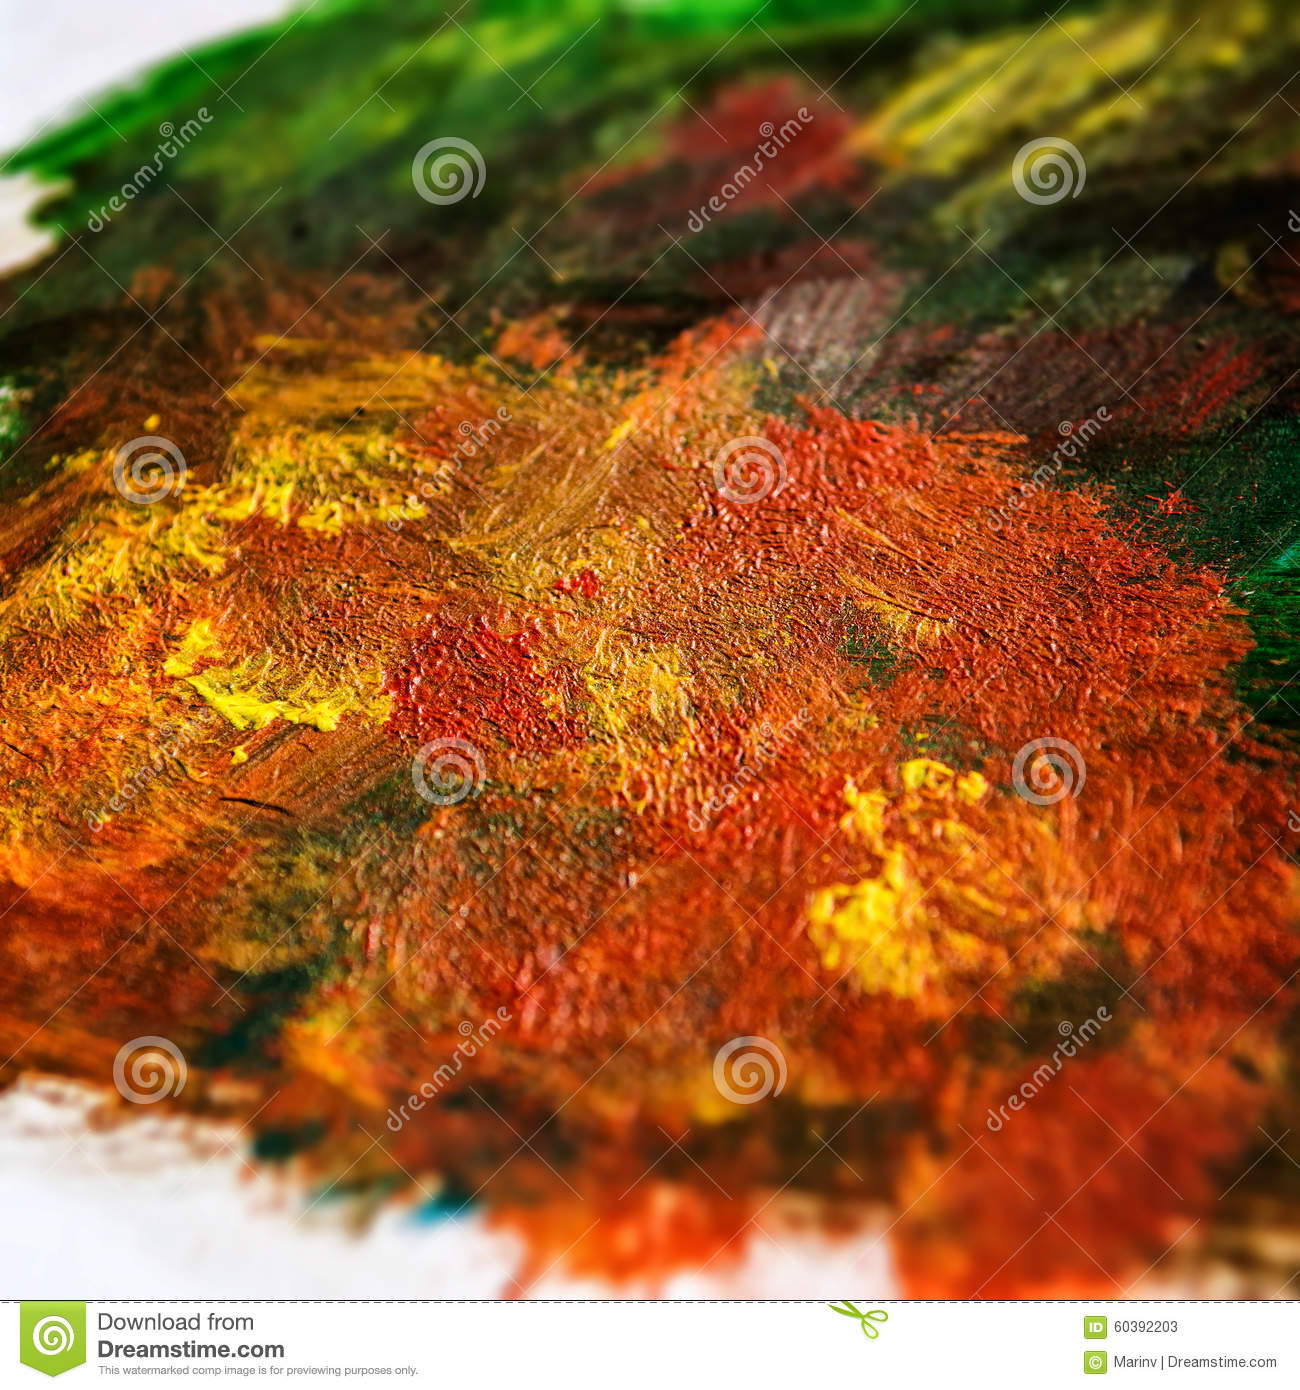 Earthy Colors watercolor background earthy colors stock photo - image: 57898011